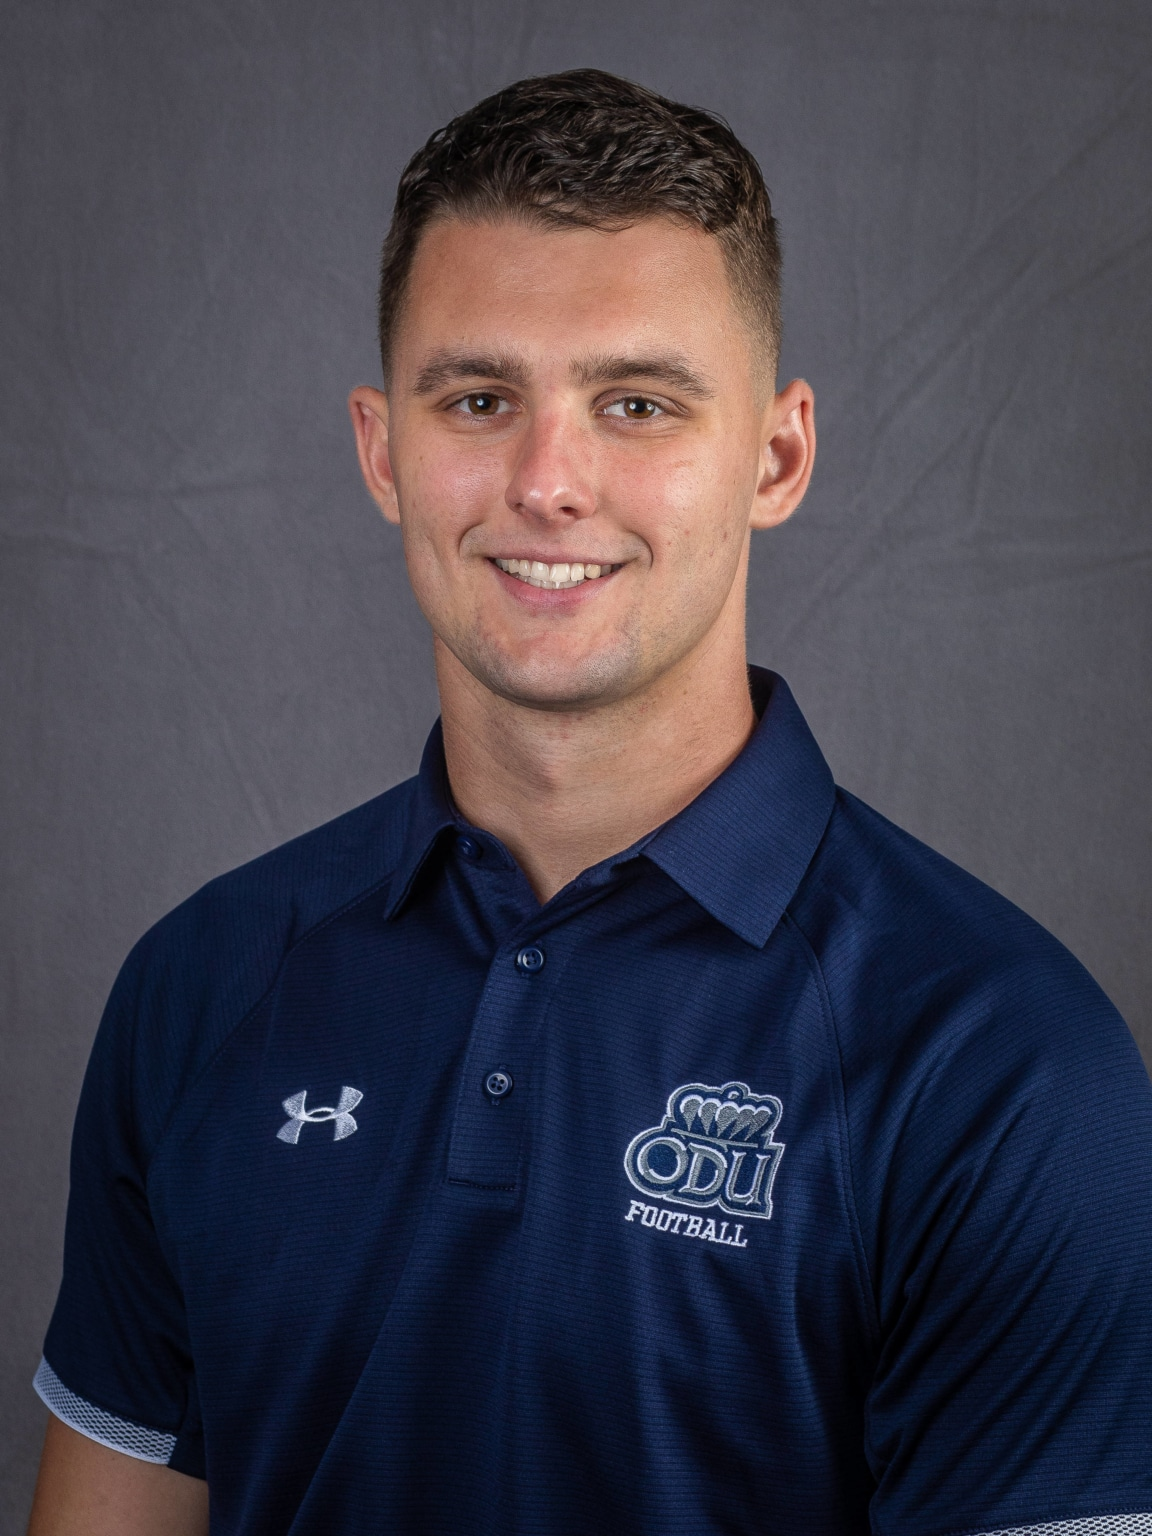 Bailey Cate Old Dominion png